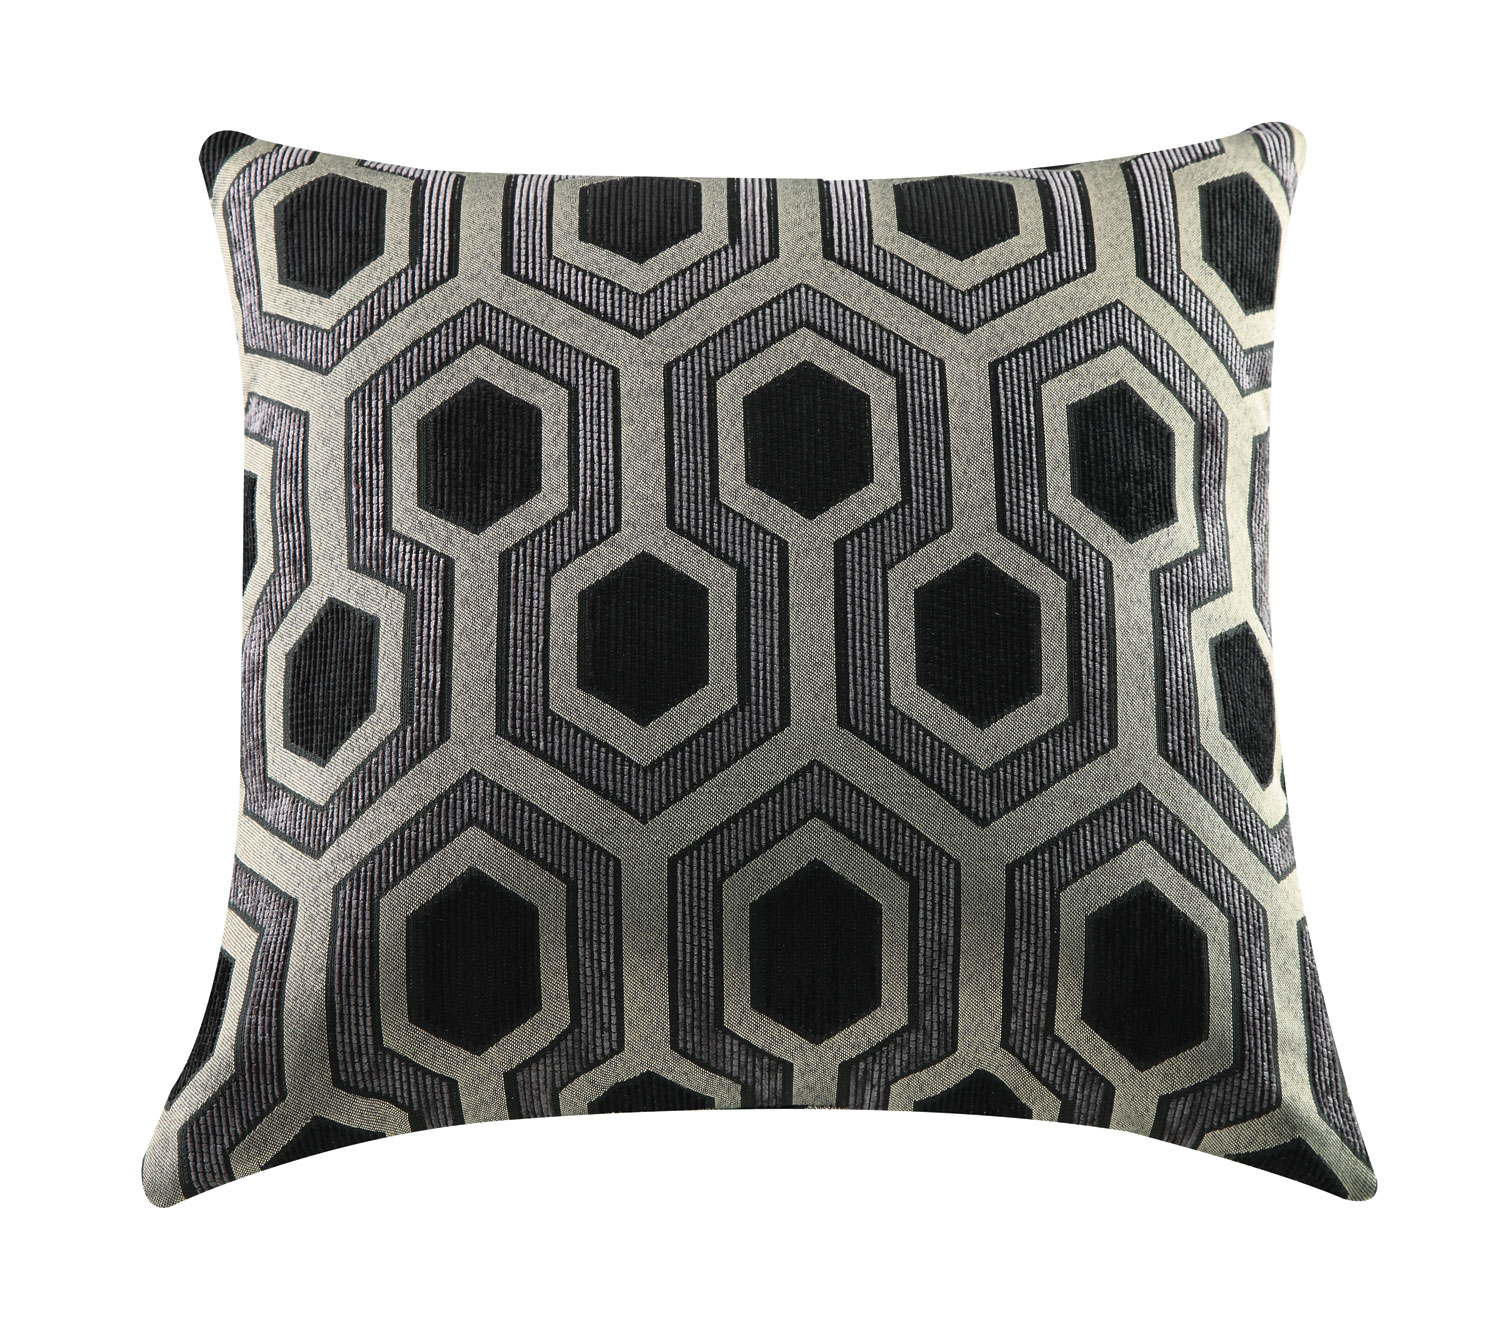 Coaster Throw Pillows Pillow - Item Number: 905020